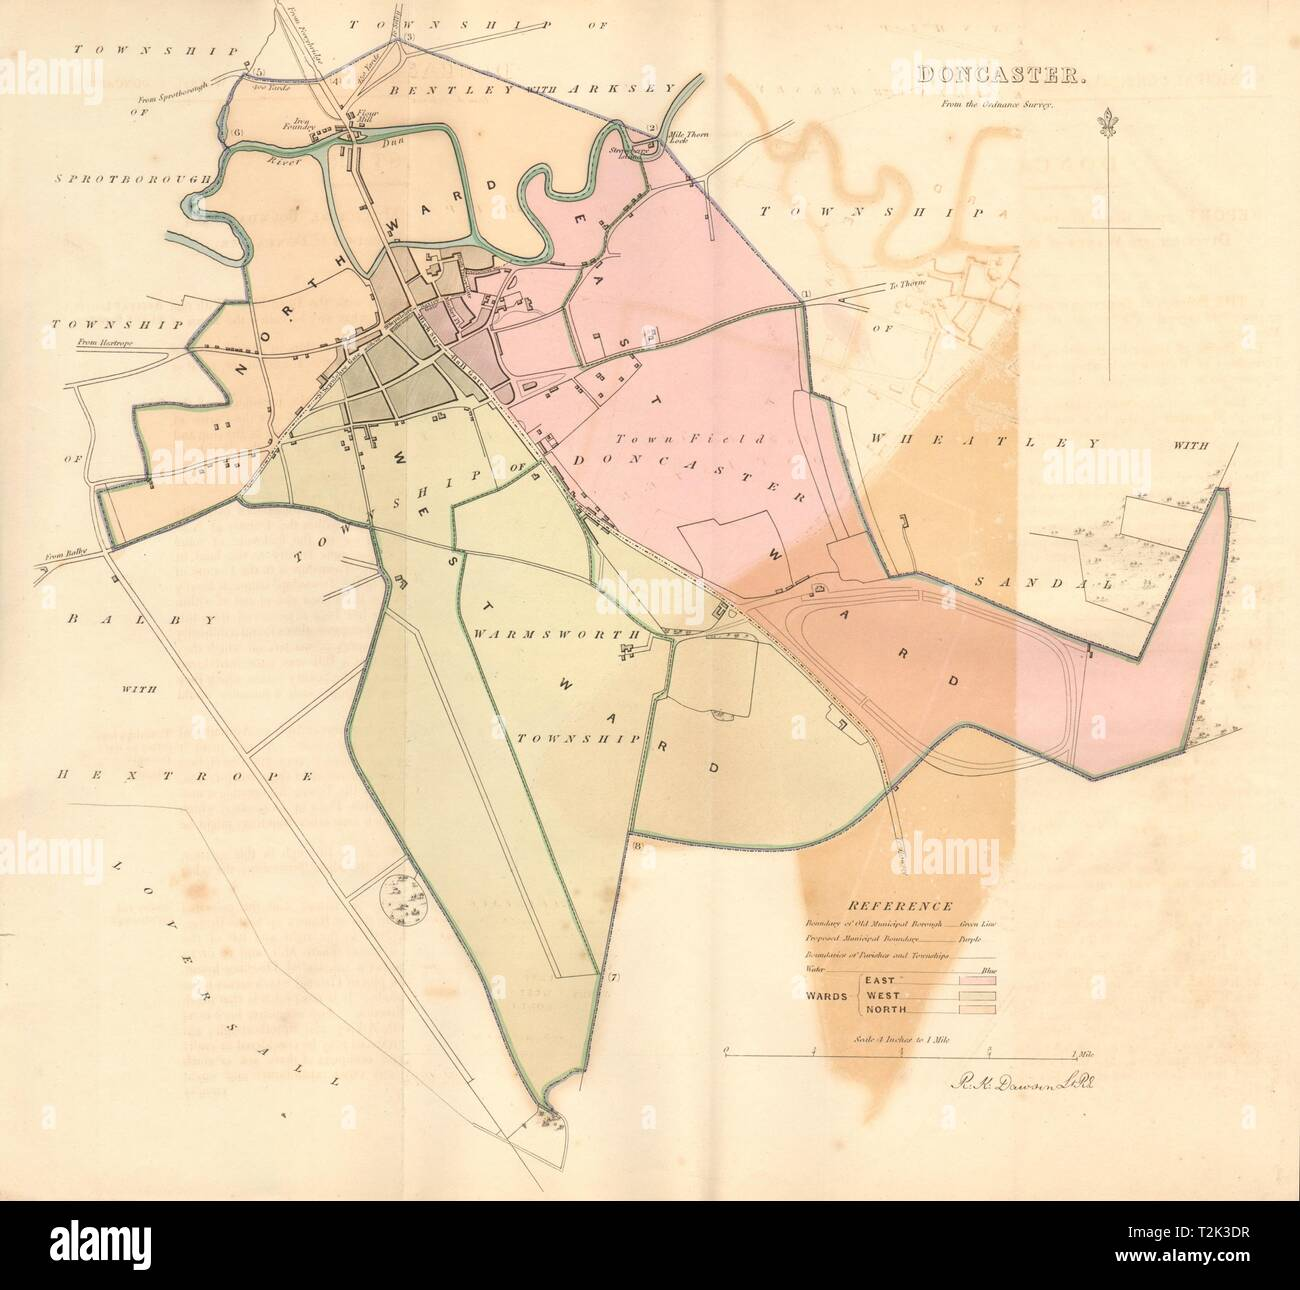 DONCASTER borough/town plan. BOUNDARY REVIEW. Yorkshire. DAWSON 1837 ...